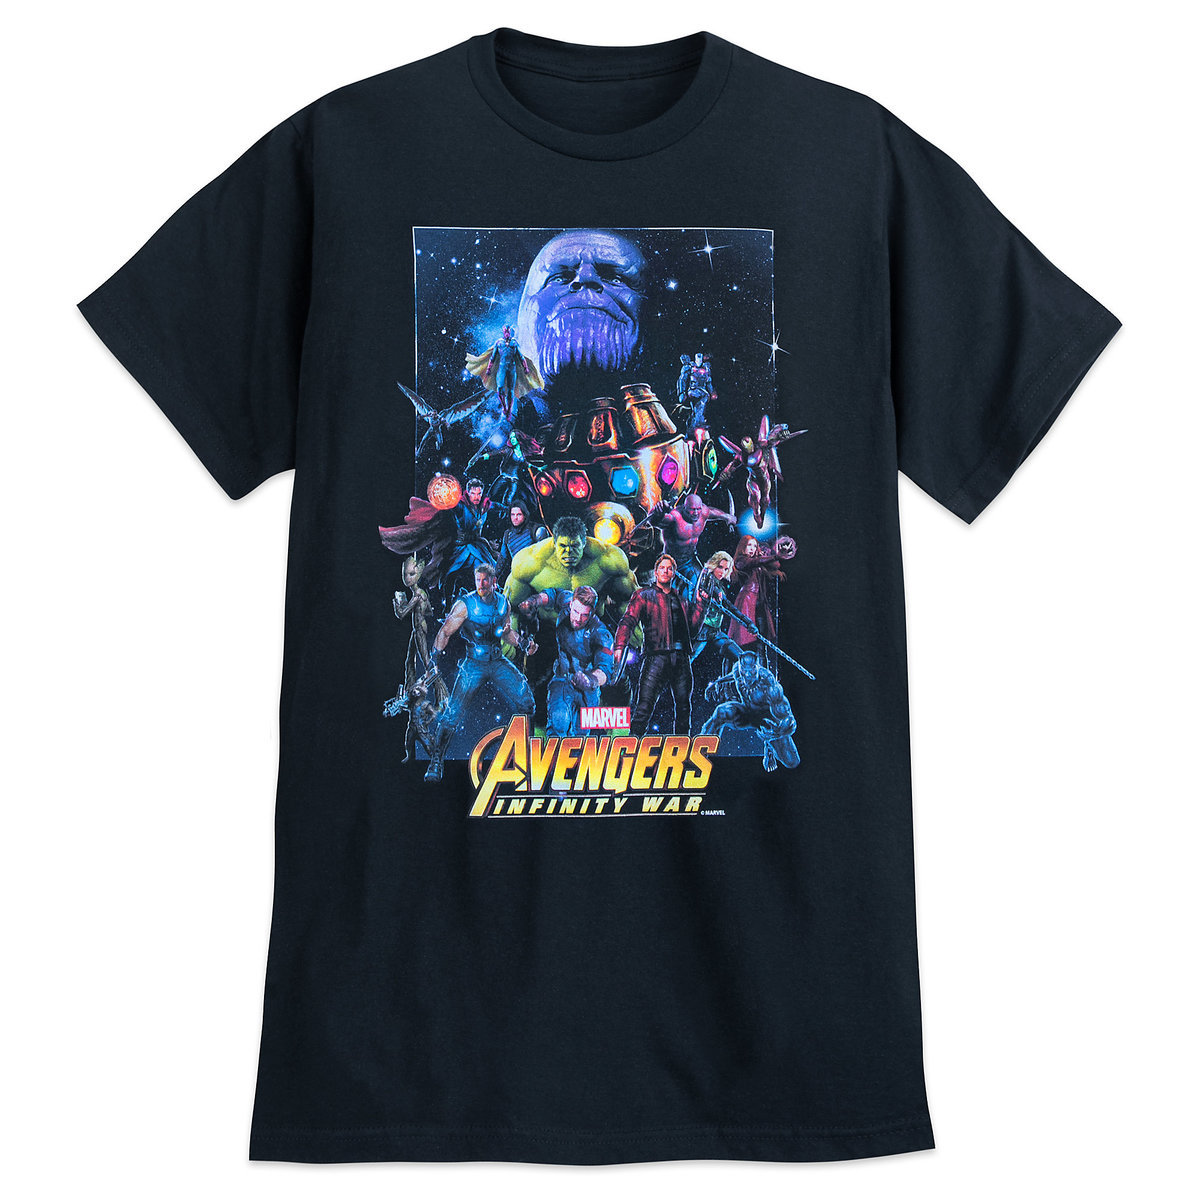 ae239979a Product Image of Marvel's Avengers: Infinity War T-Shirt for Adults - Movie  Poster